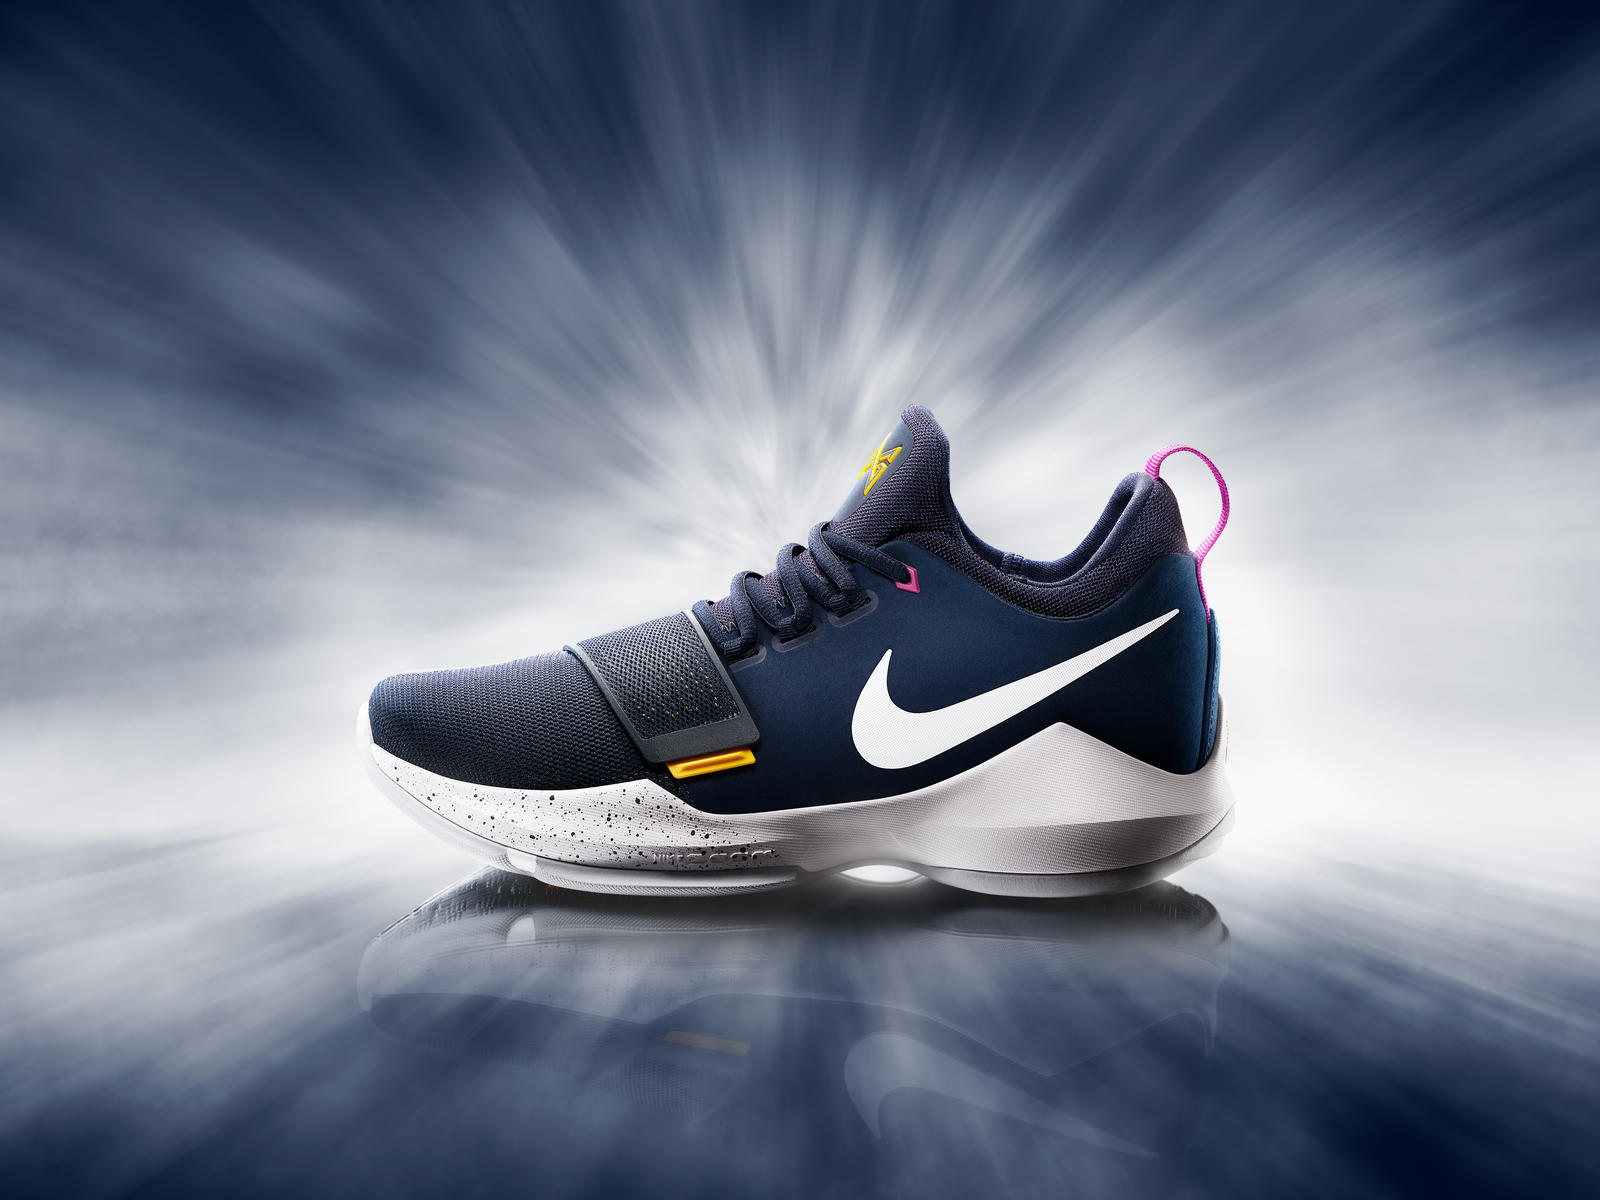 super popular 13a10 a47f0 10 Things To Know About the PG1 - Nike News